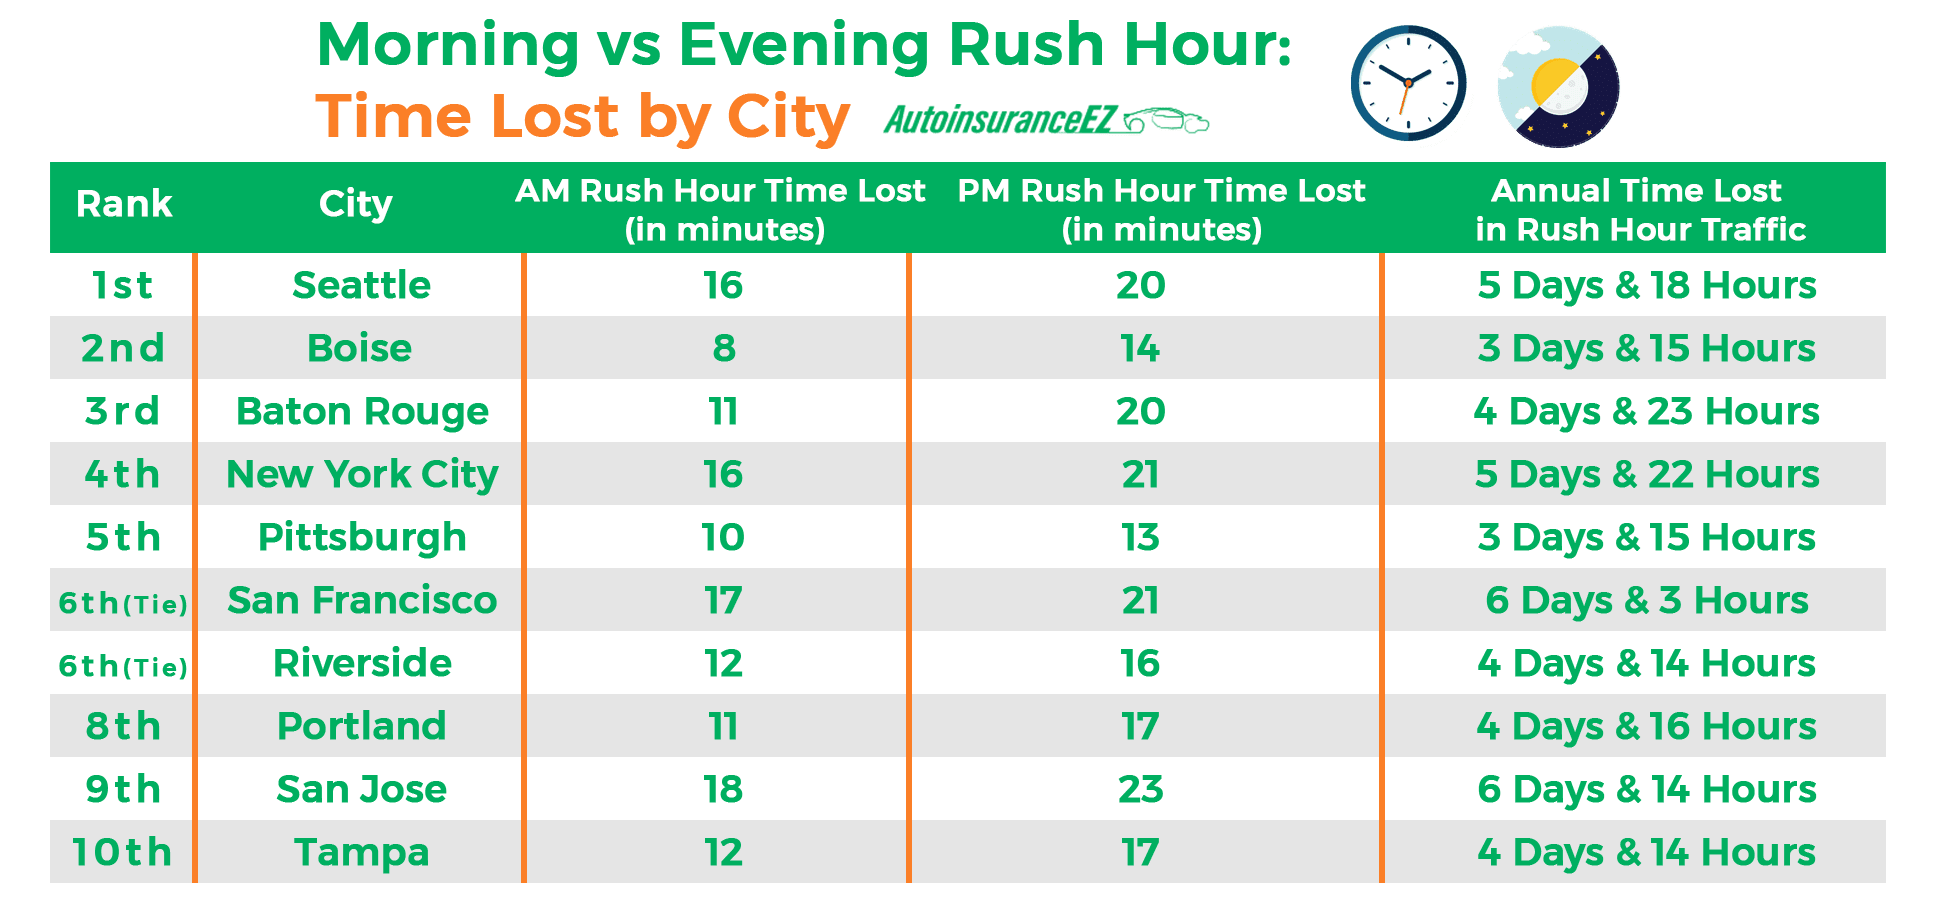 Morning vs Evening Rush Hour Time Lost by City